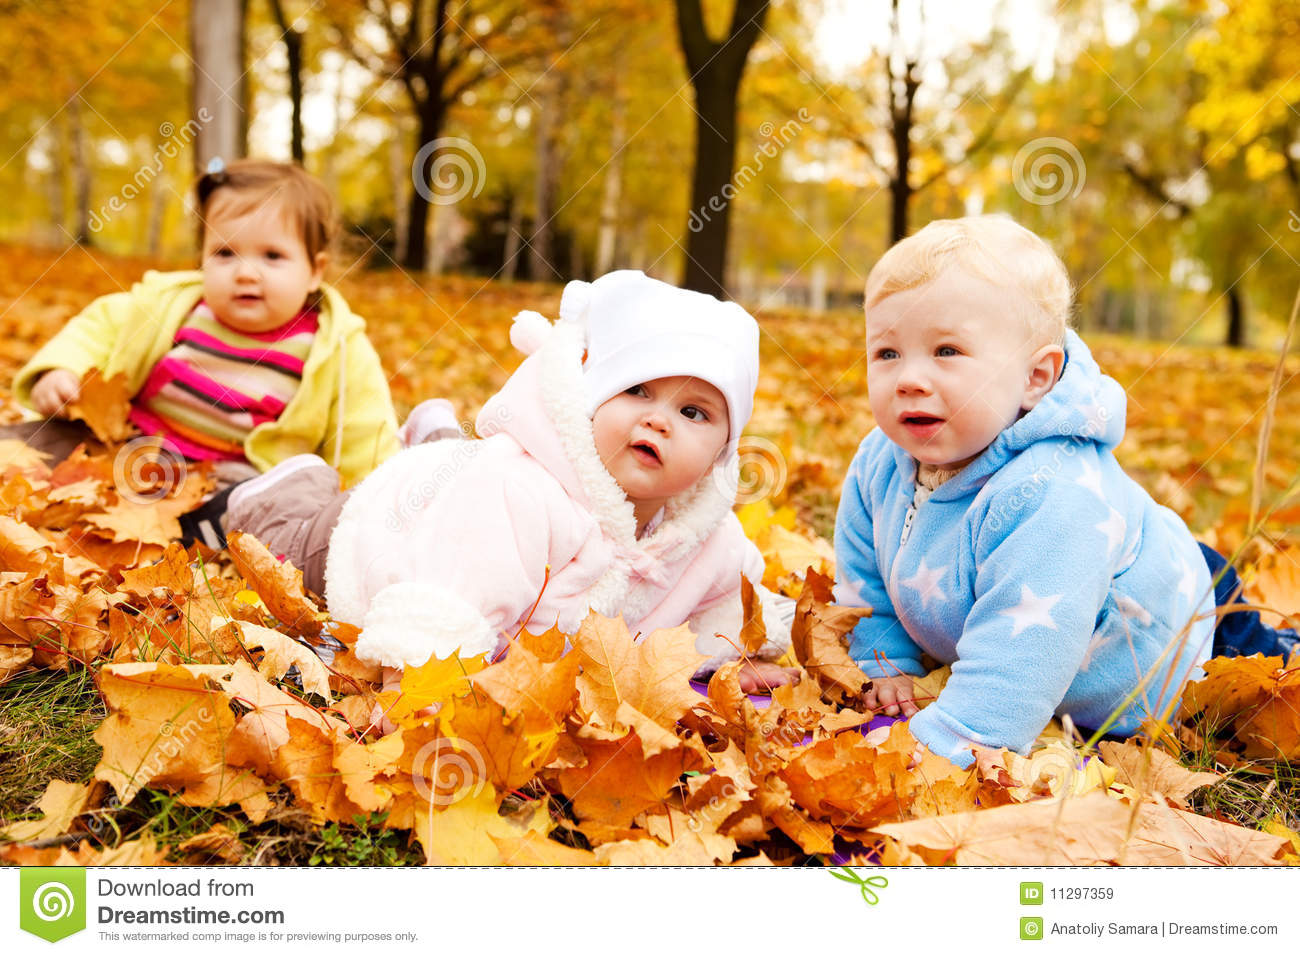 Fall Barn Wallpaper Autumn Babies Royalty Free Stock Images Image 11297359